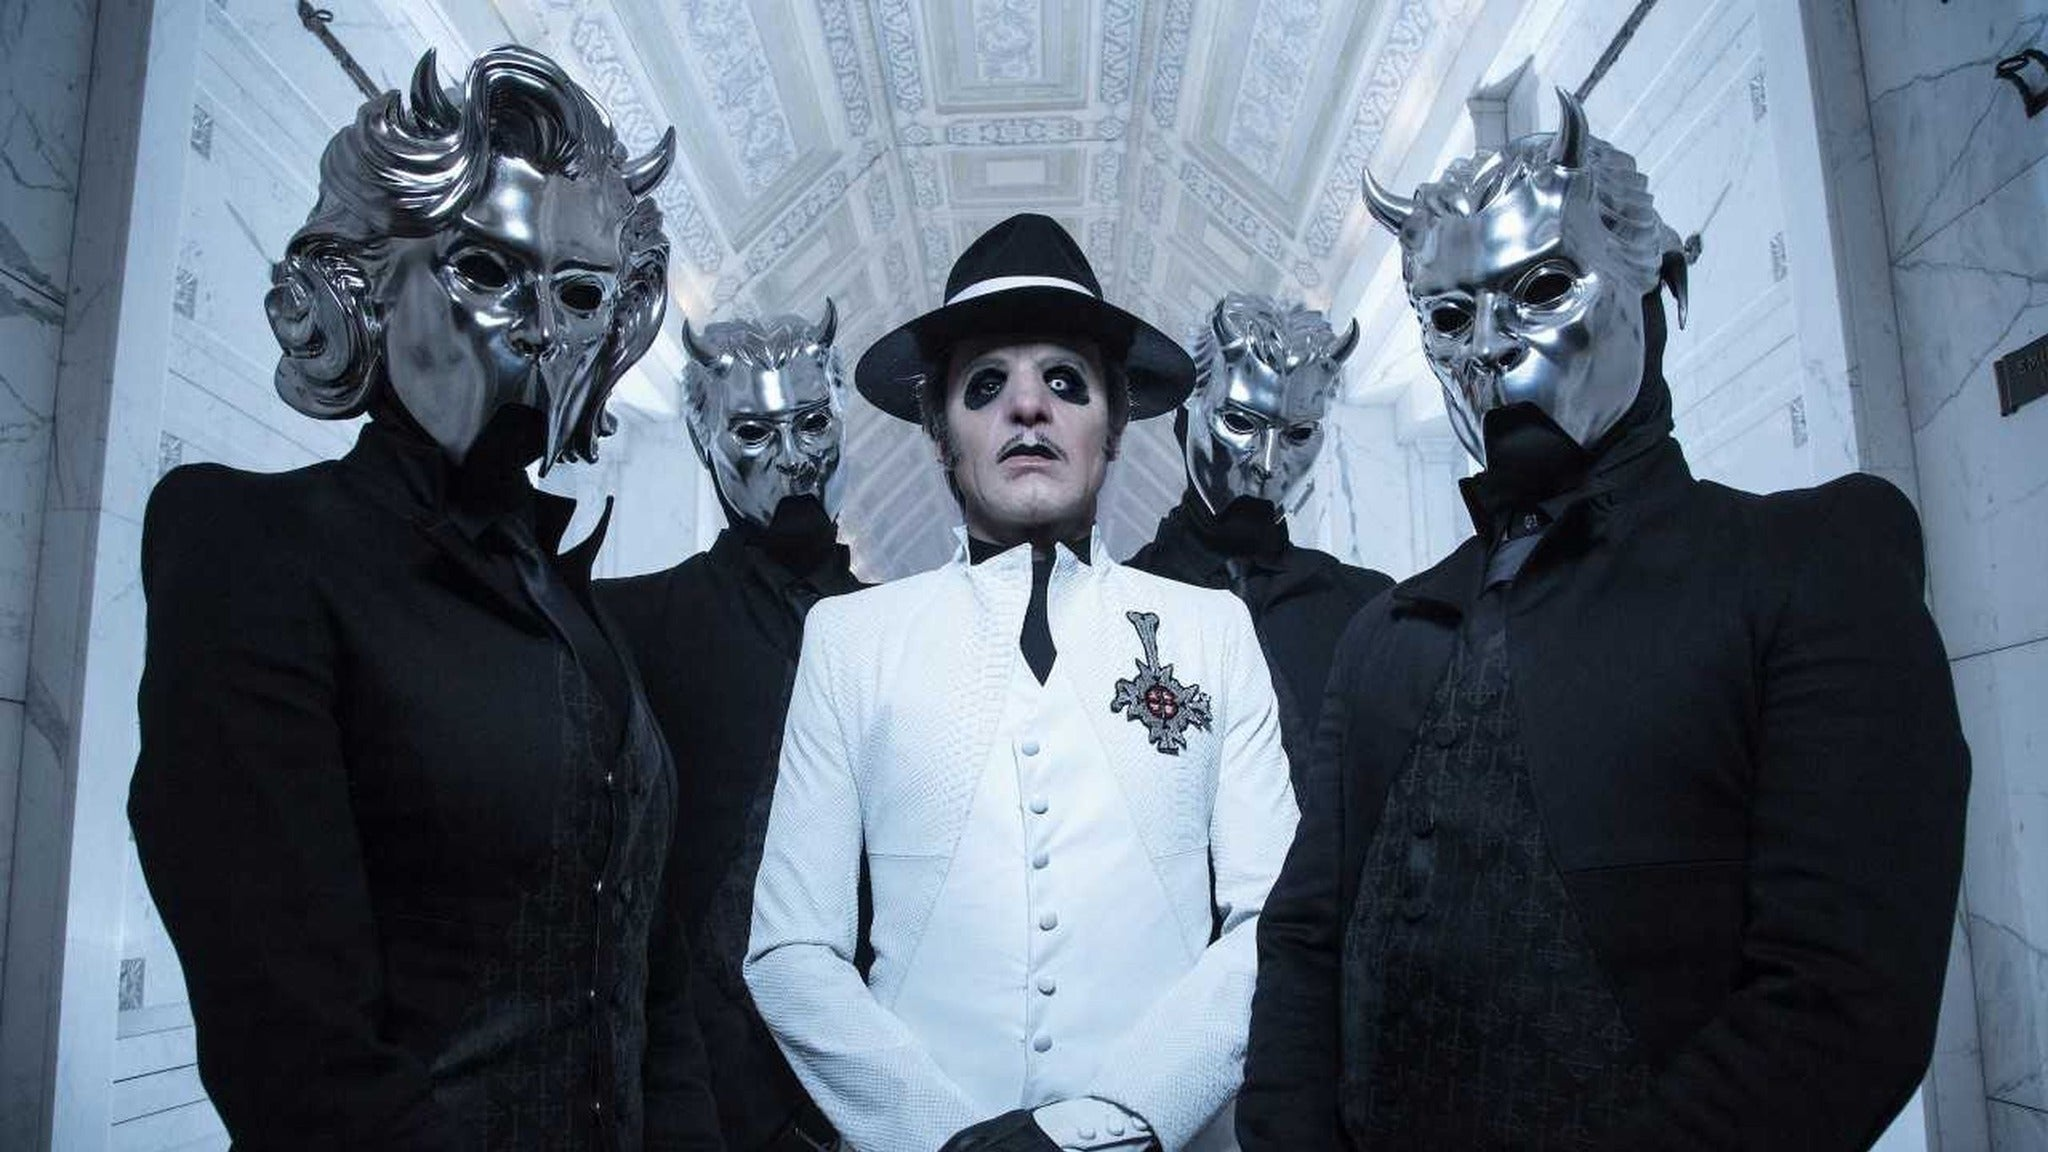 INTERVIEW: Tobias Forge of Ghost talks designing the stage, touring, and what the future holds